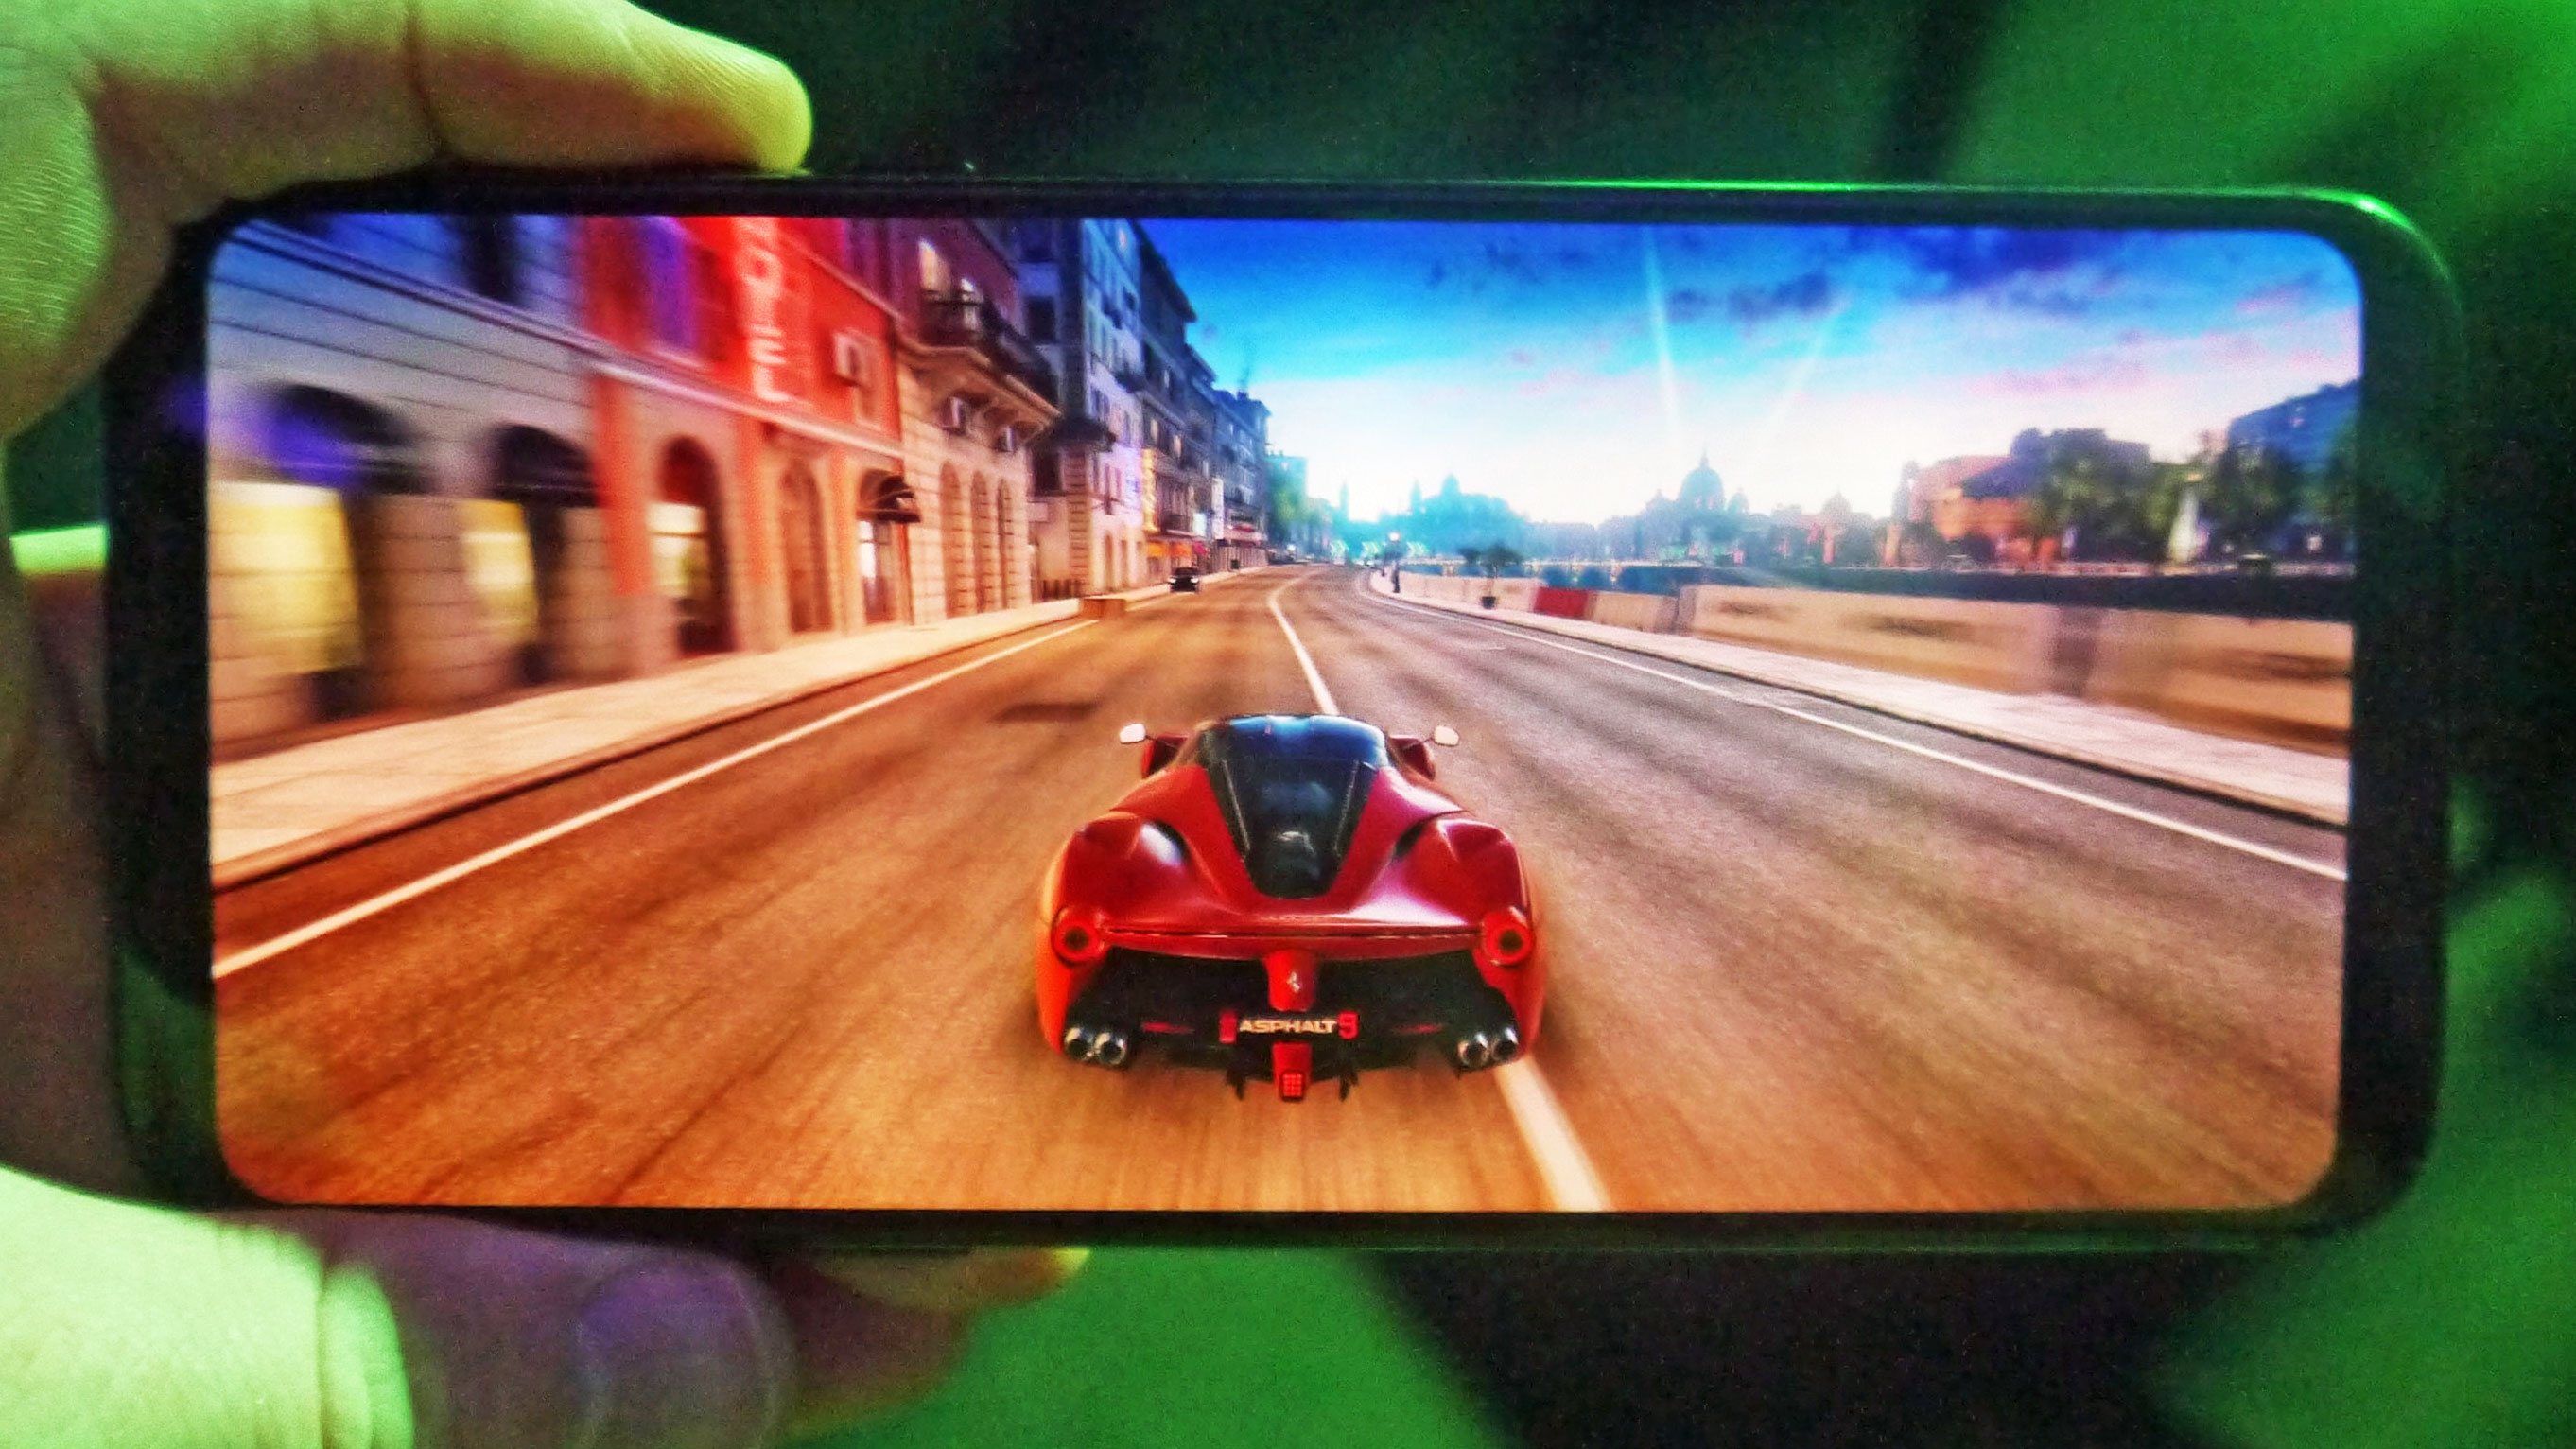 Best Gaming Phone 2020 Here's what experts say mobile gaming will look like in 2020